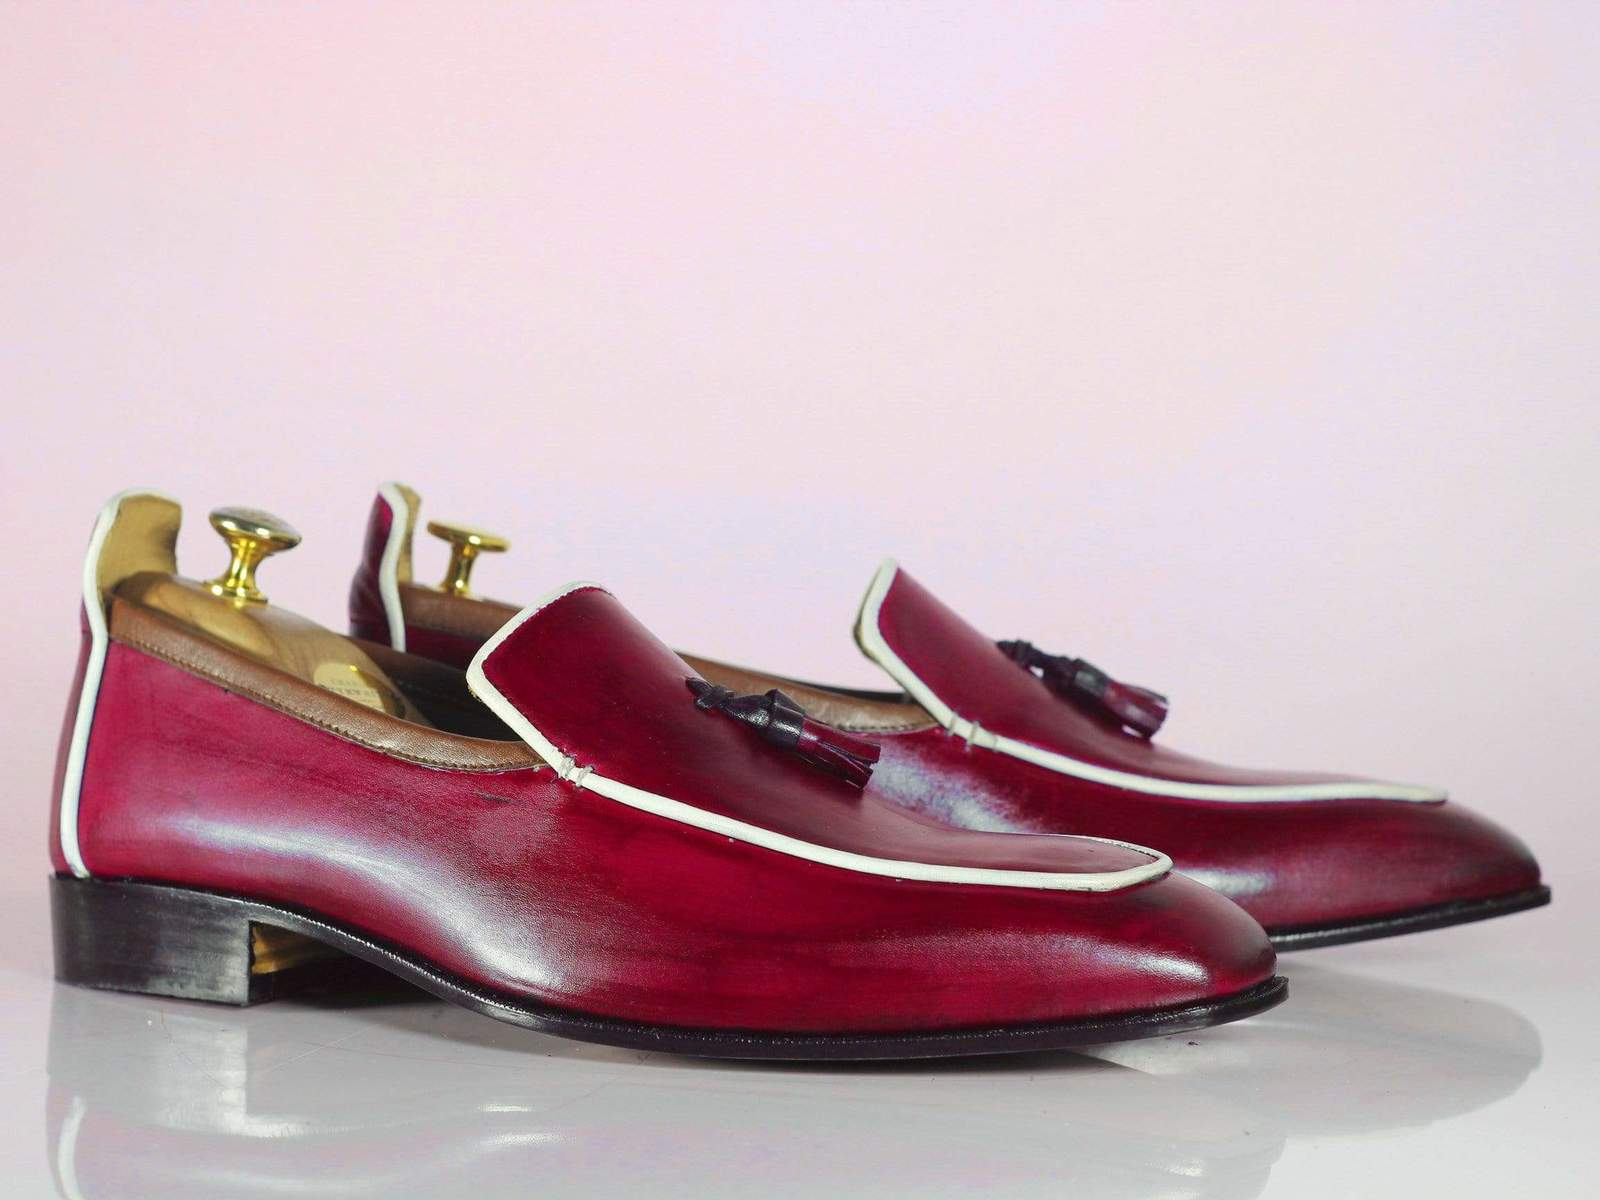 Primary image for Bespoke Pink Tussle Leather Loafers for Men's